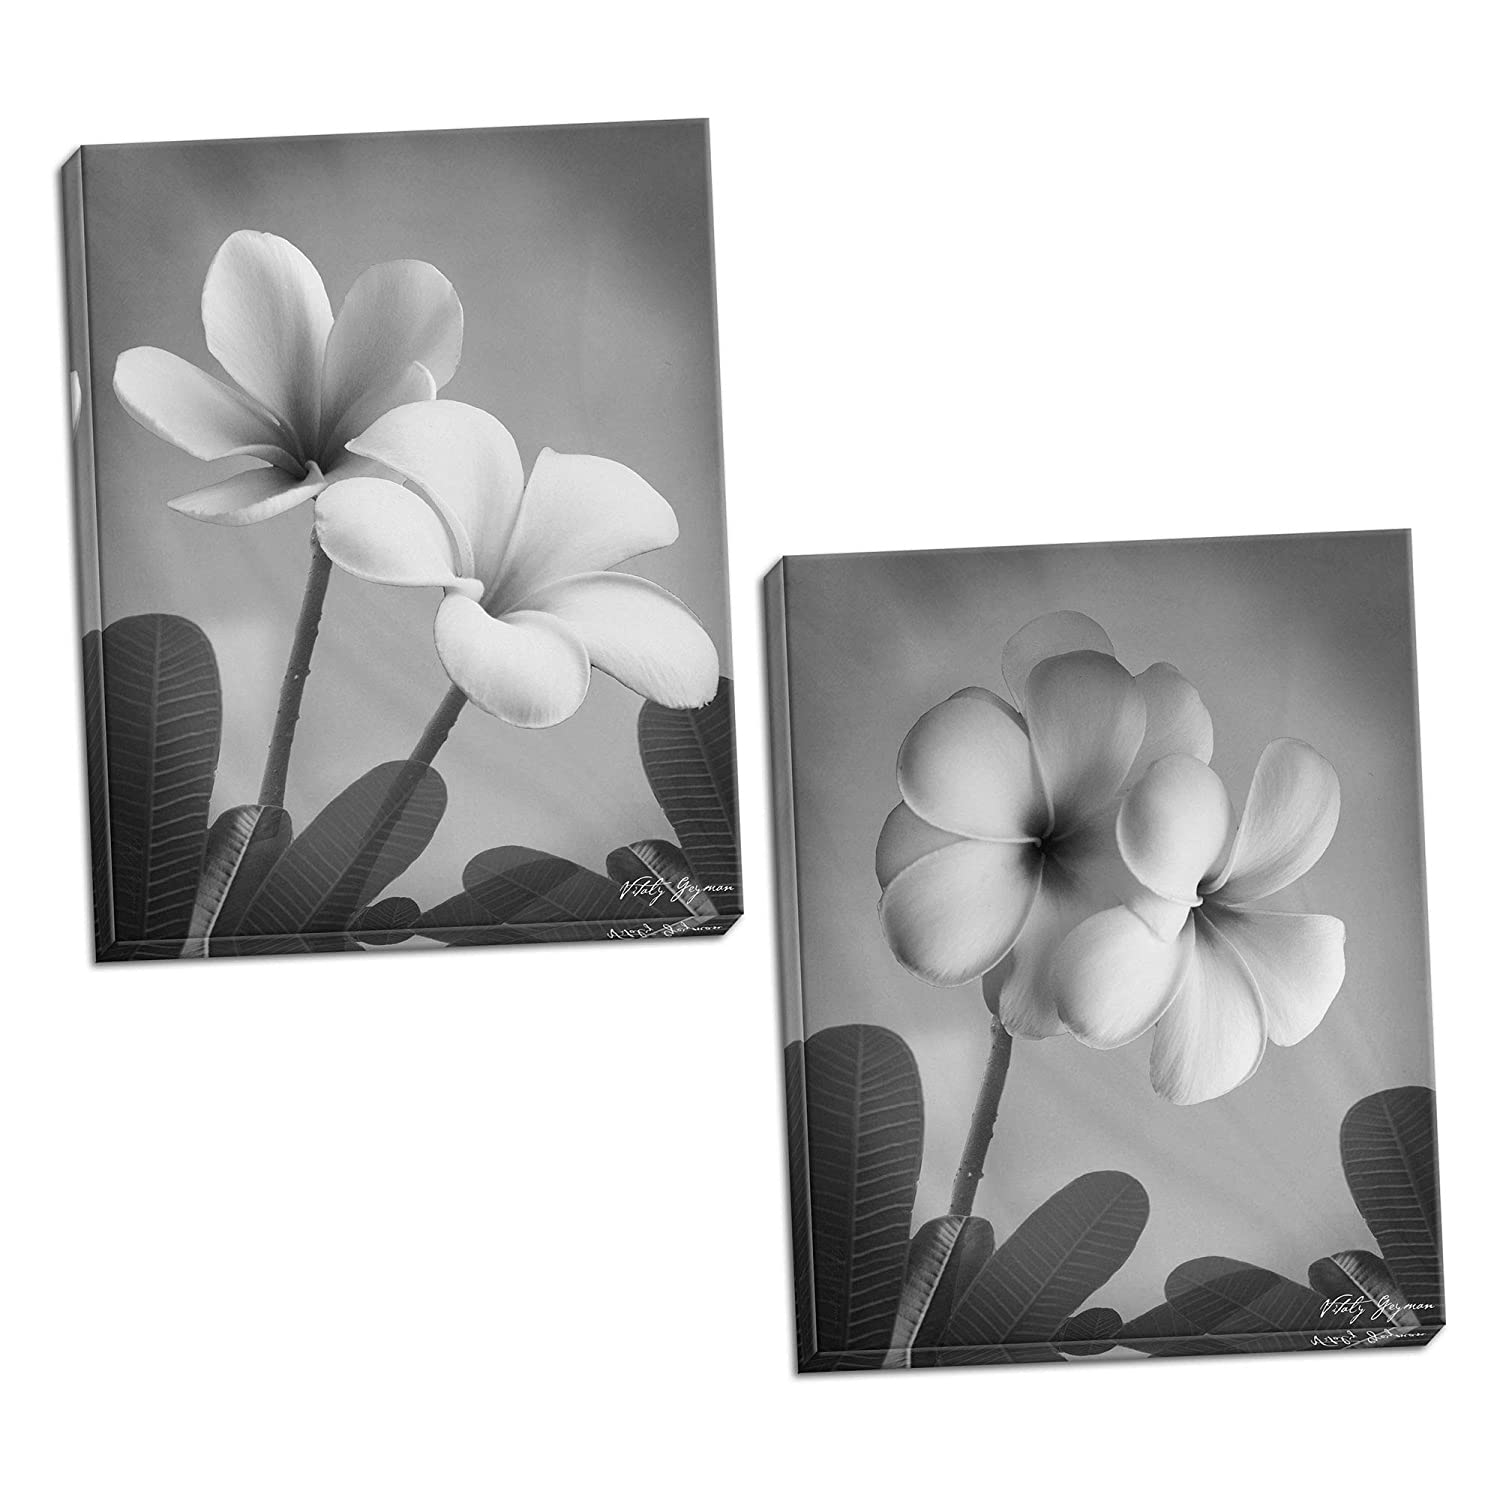 Amazon com gango editions 2 classic beautiful black and white blooming plumerias floral décor two 8x10in mounted prints ready to hang posters prints